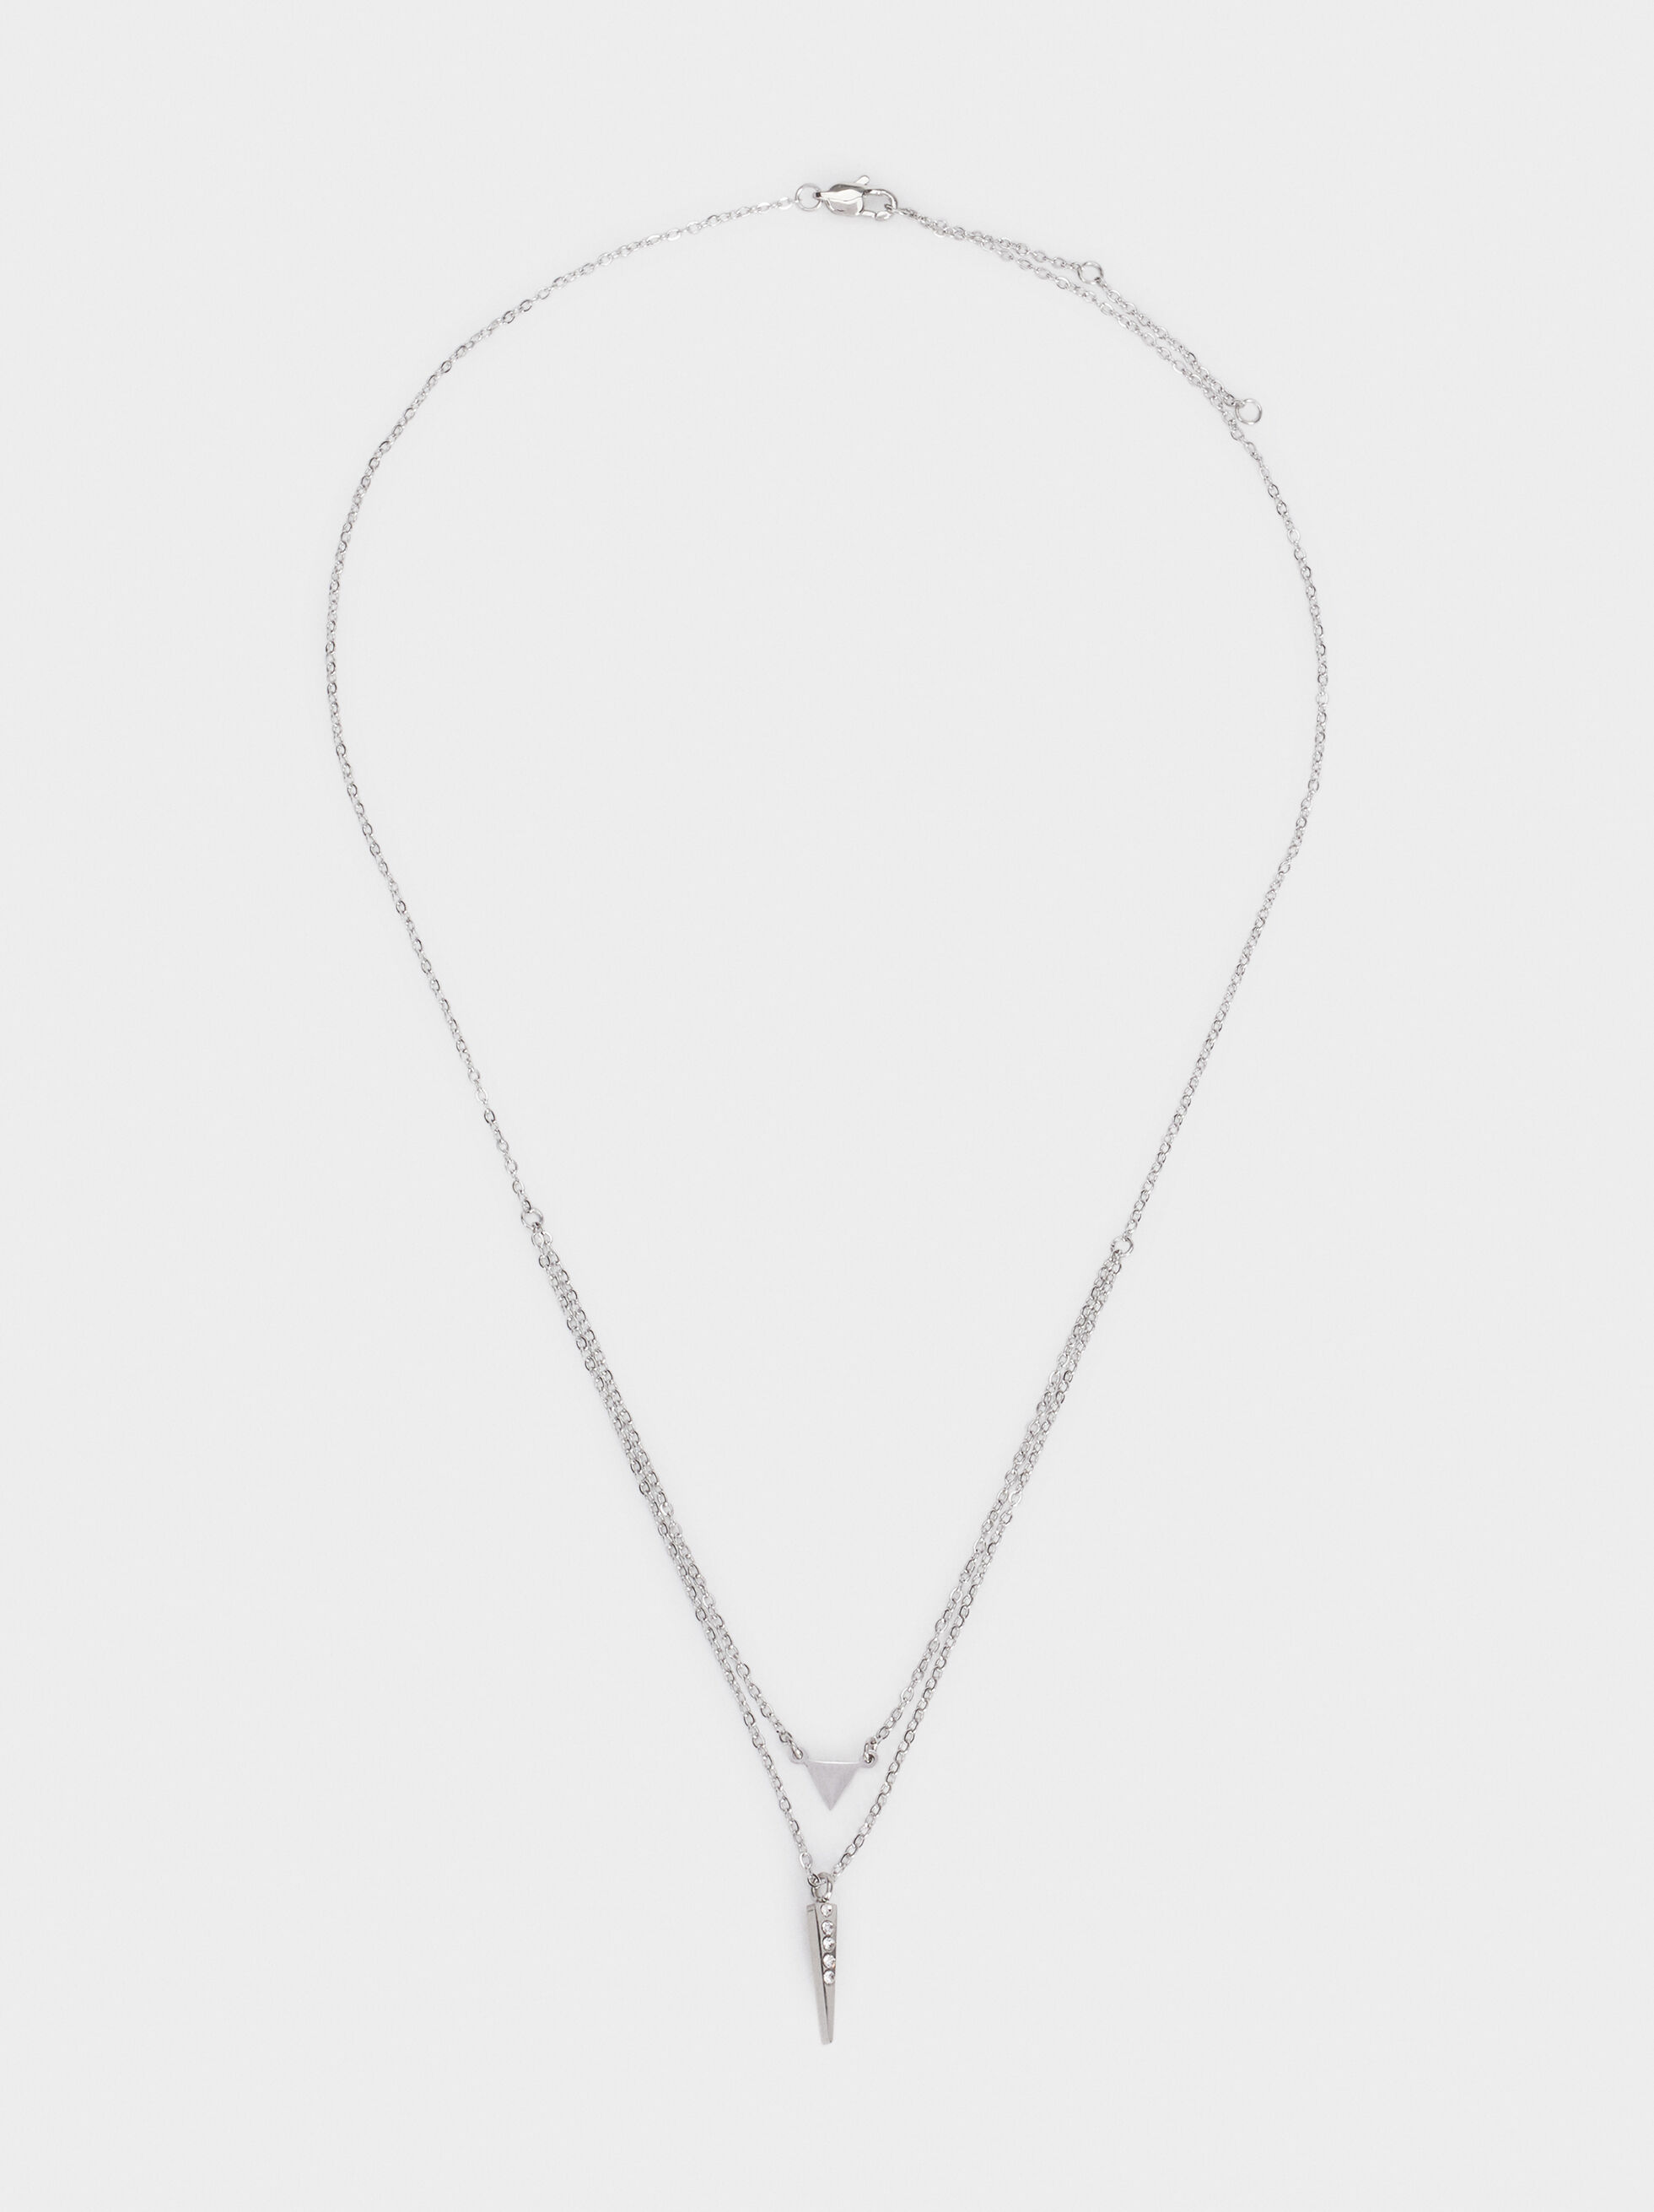 Stainless Steel Short Double Necklace, Silver, hi-res